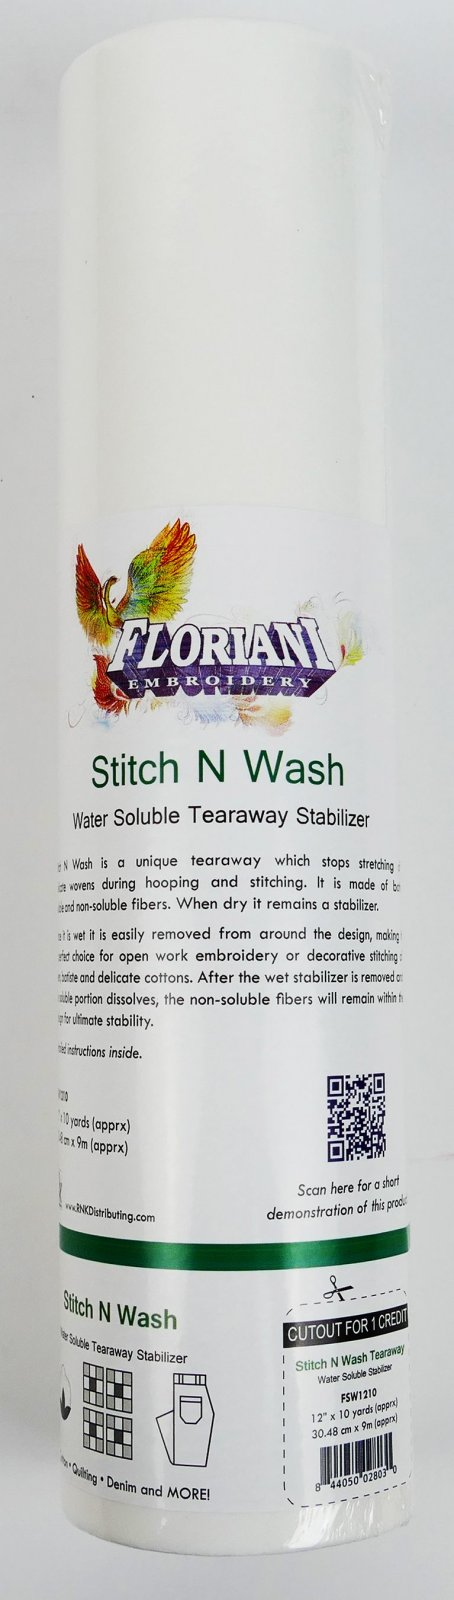 Stitch N Wash : Water Soluble Tearaway Stabilizer - 12 x 10 yards - Floriani